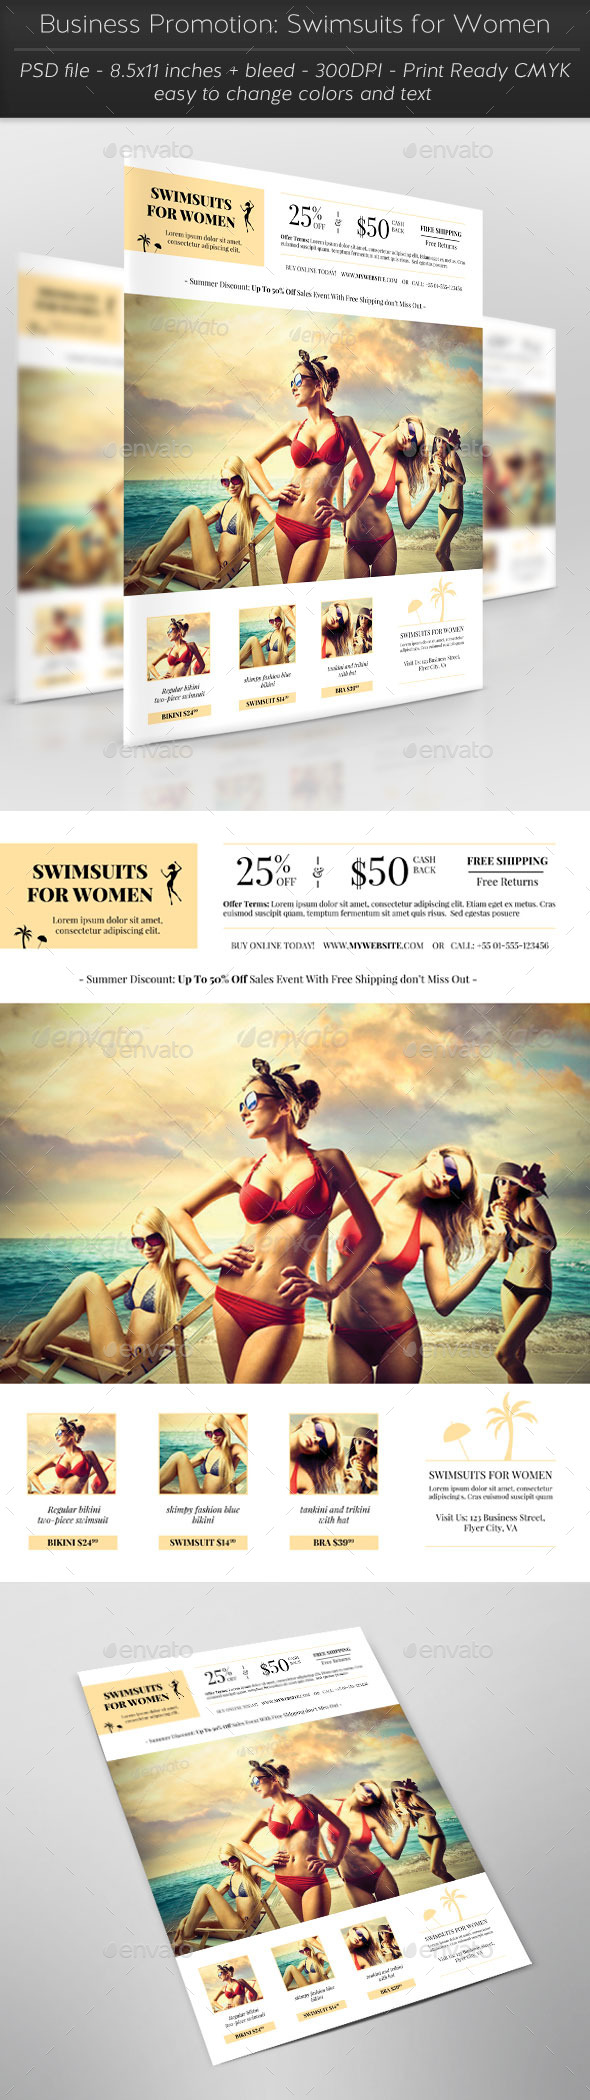 GraphicRiver Business Promotion Swimsuits for Women 11861693